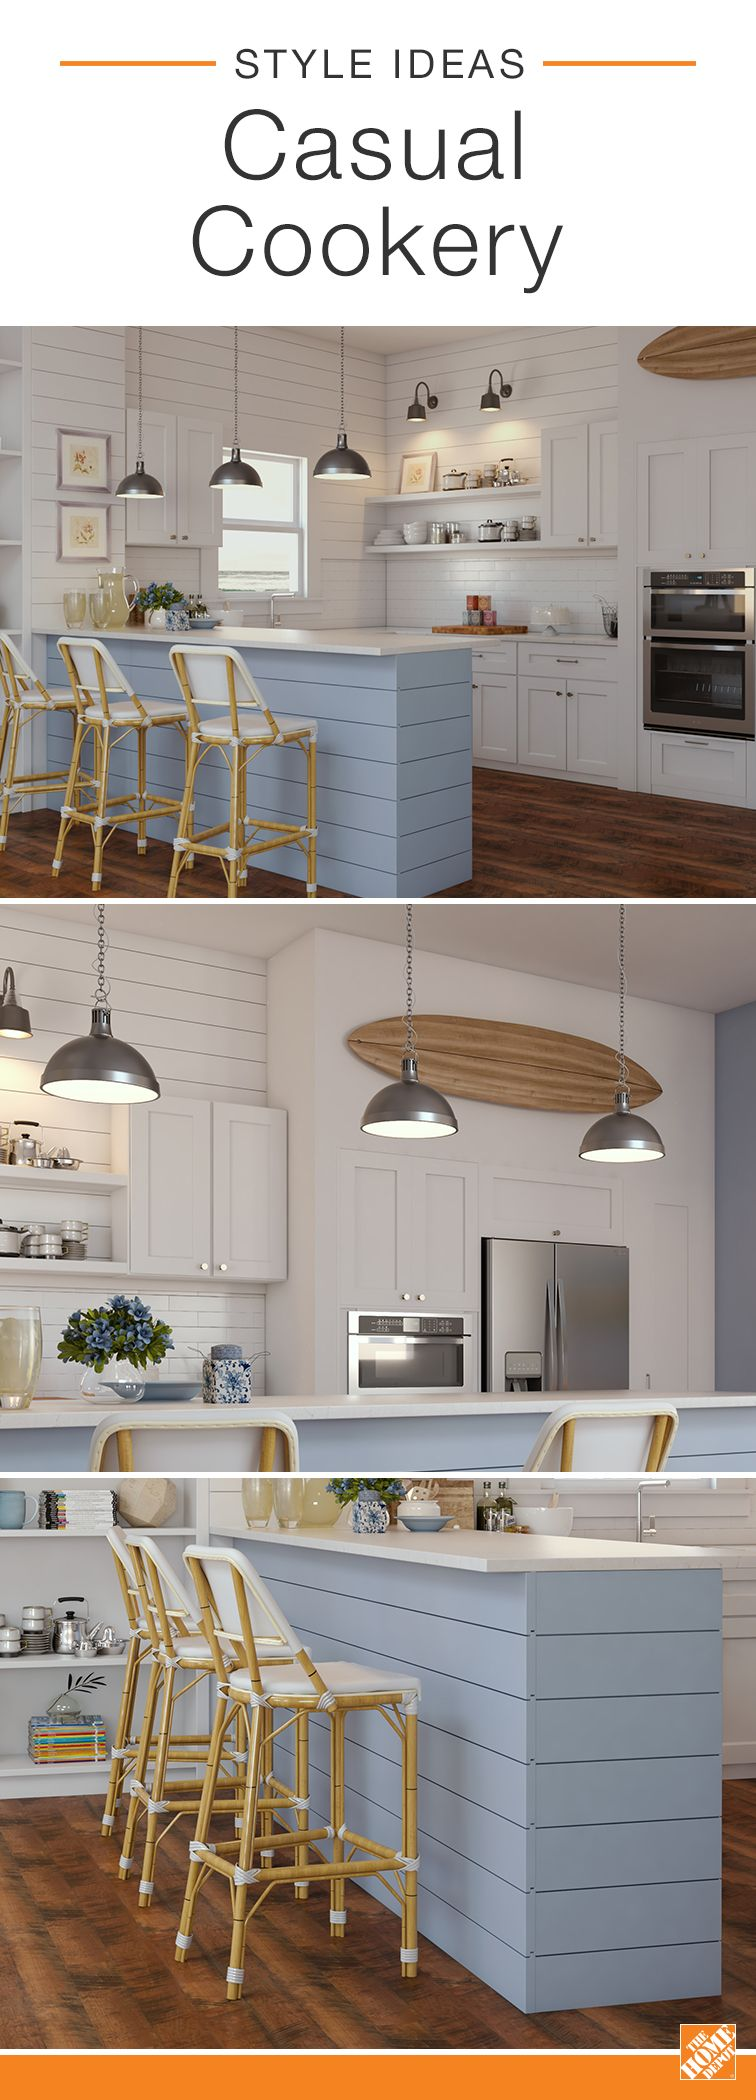 Best Casual Elegance Abounds In This Adorable Eat In Kitchen 400 x 300